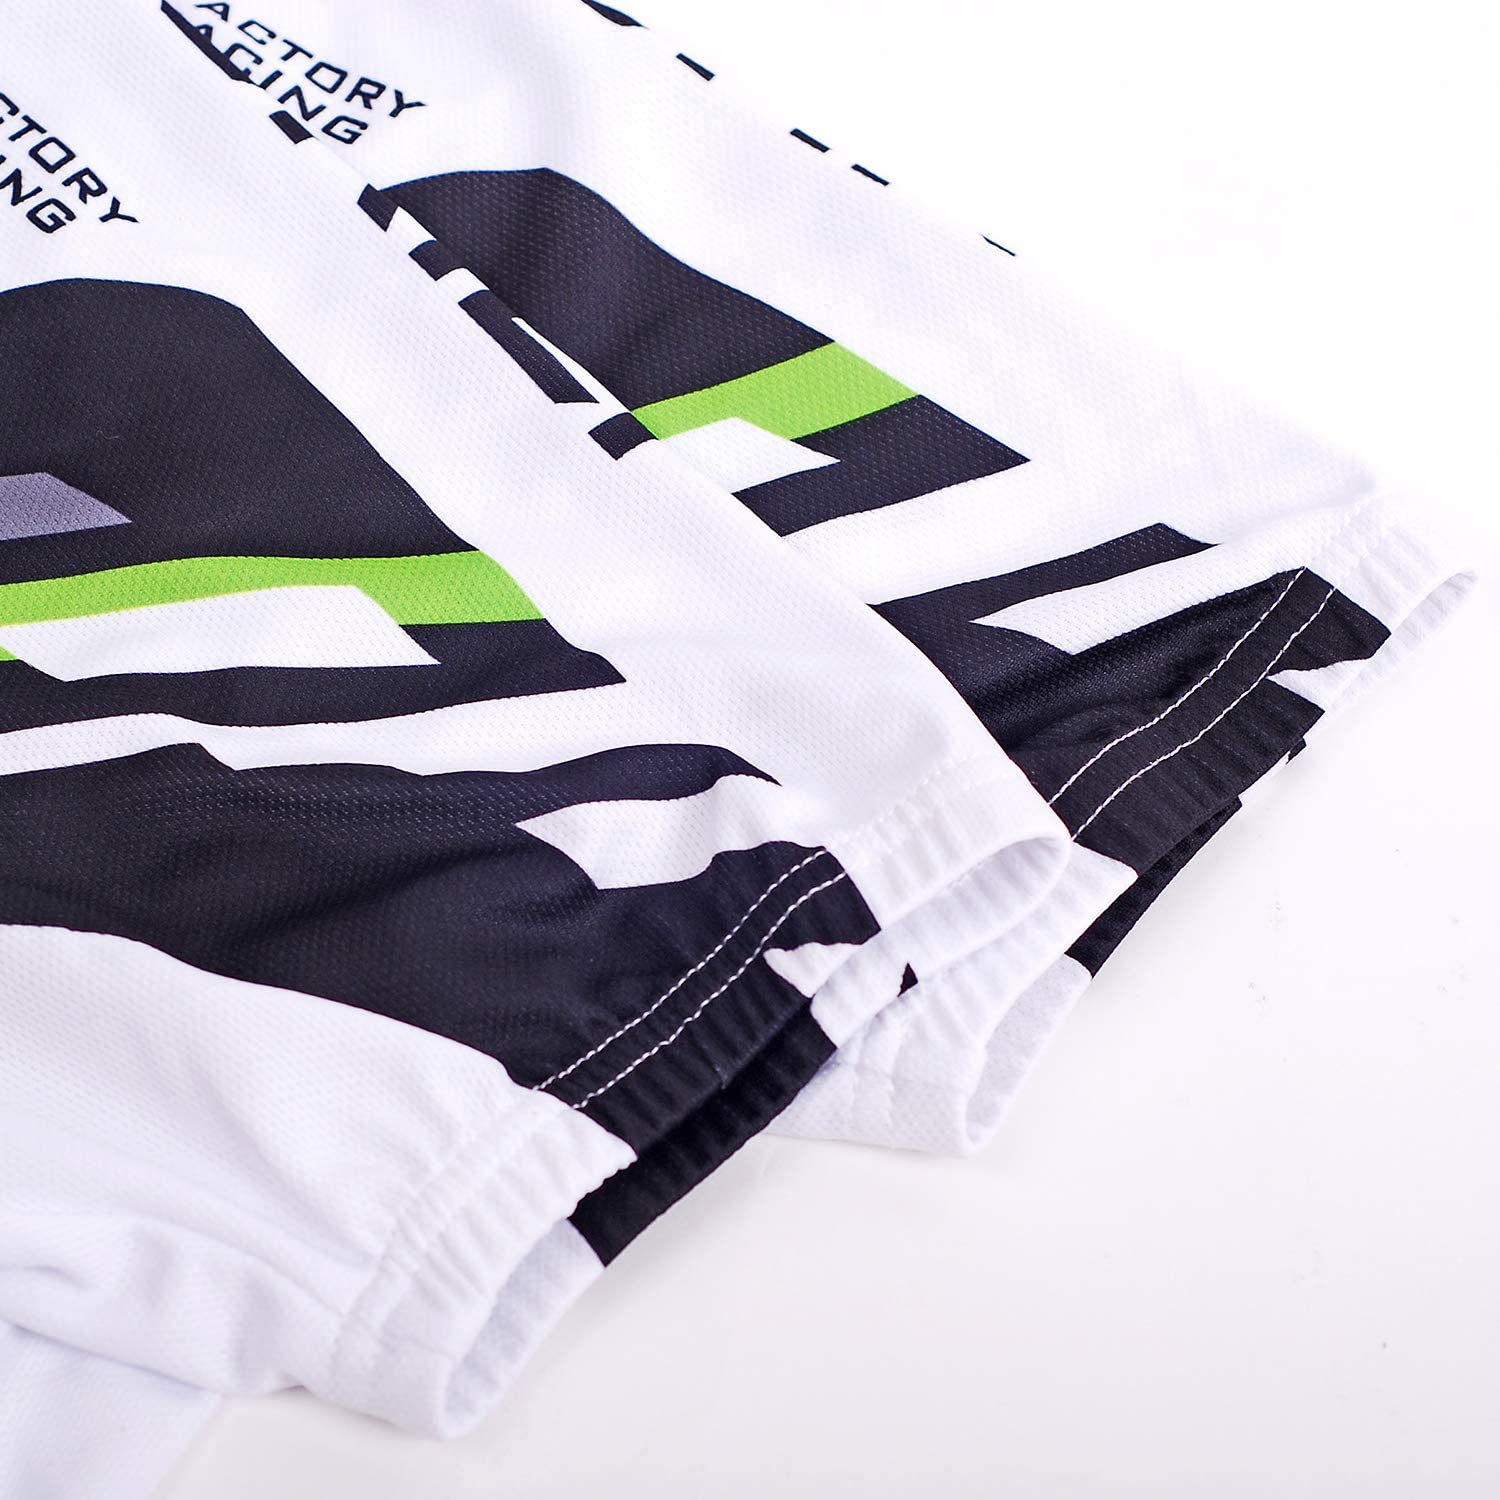 NUCKILY Sports Mens Cycling Jersey Short Sleeve Bike Bicycle Shirt Quick Dry Running Tops with 3 Rear Pockets